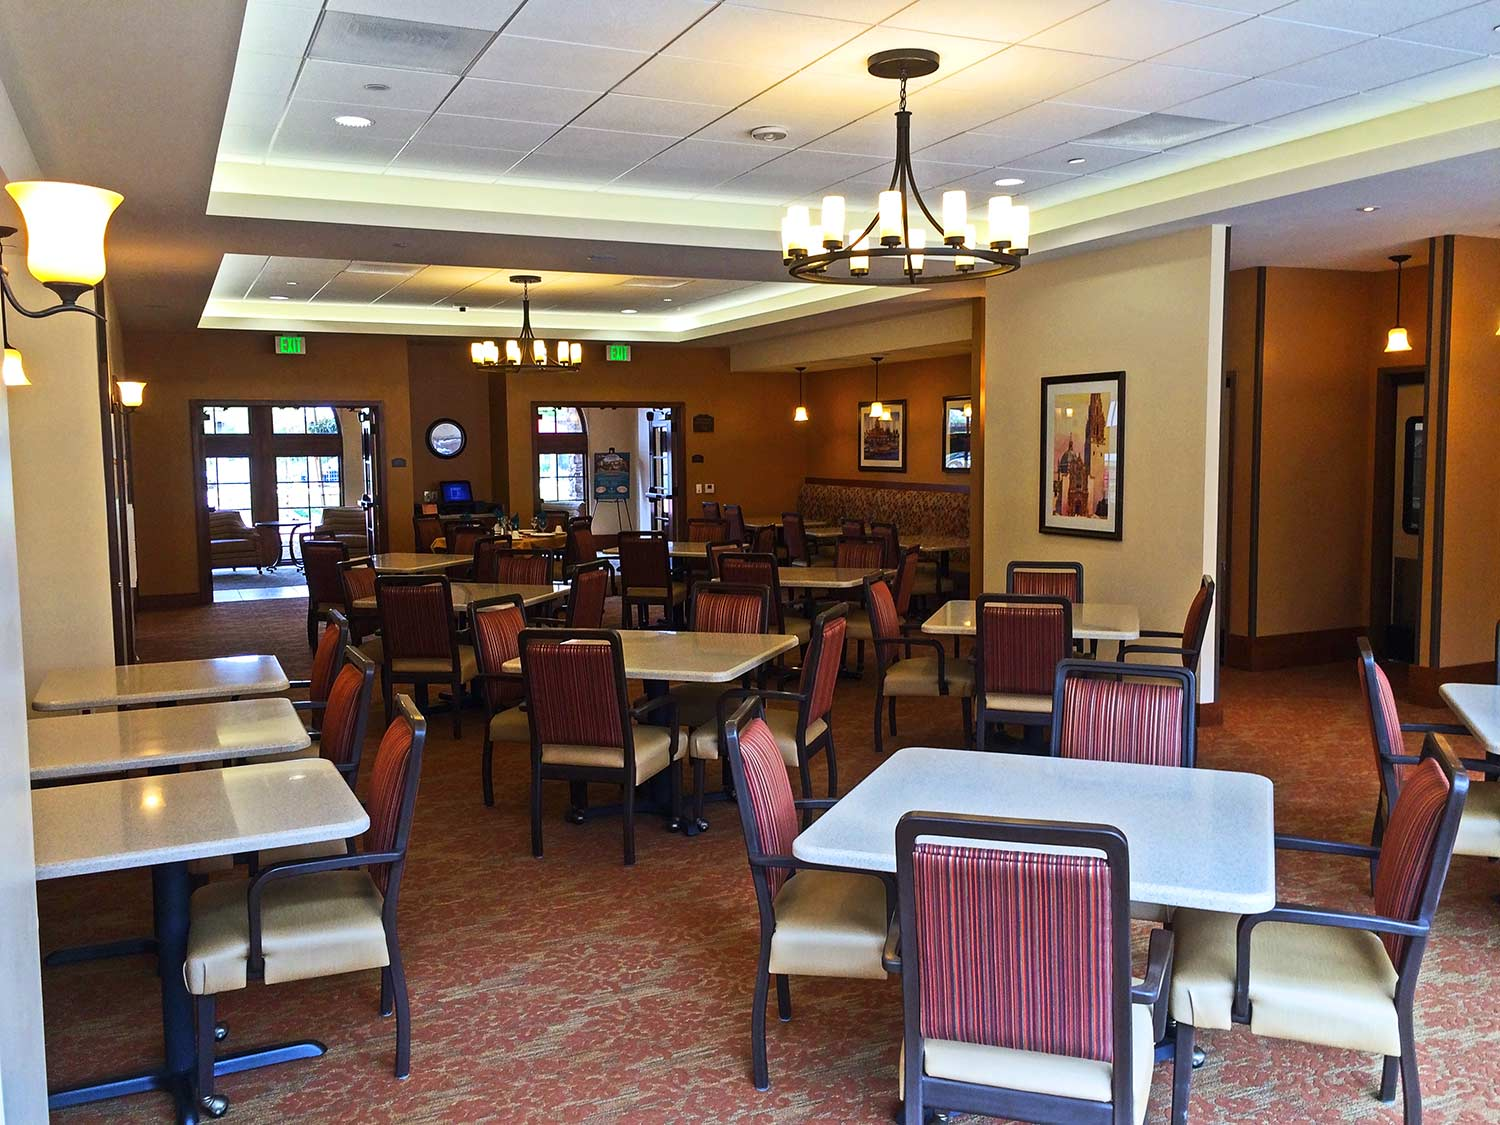 St. Paul's Plaza interior dining room